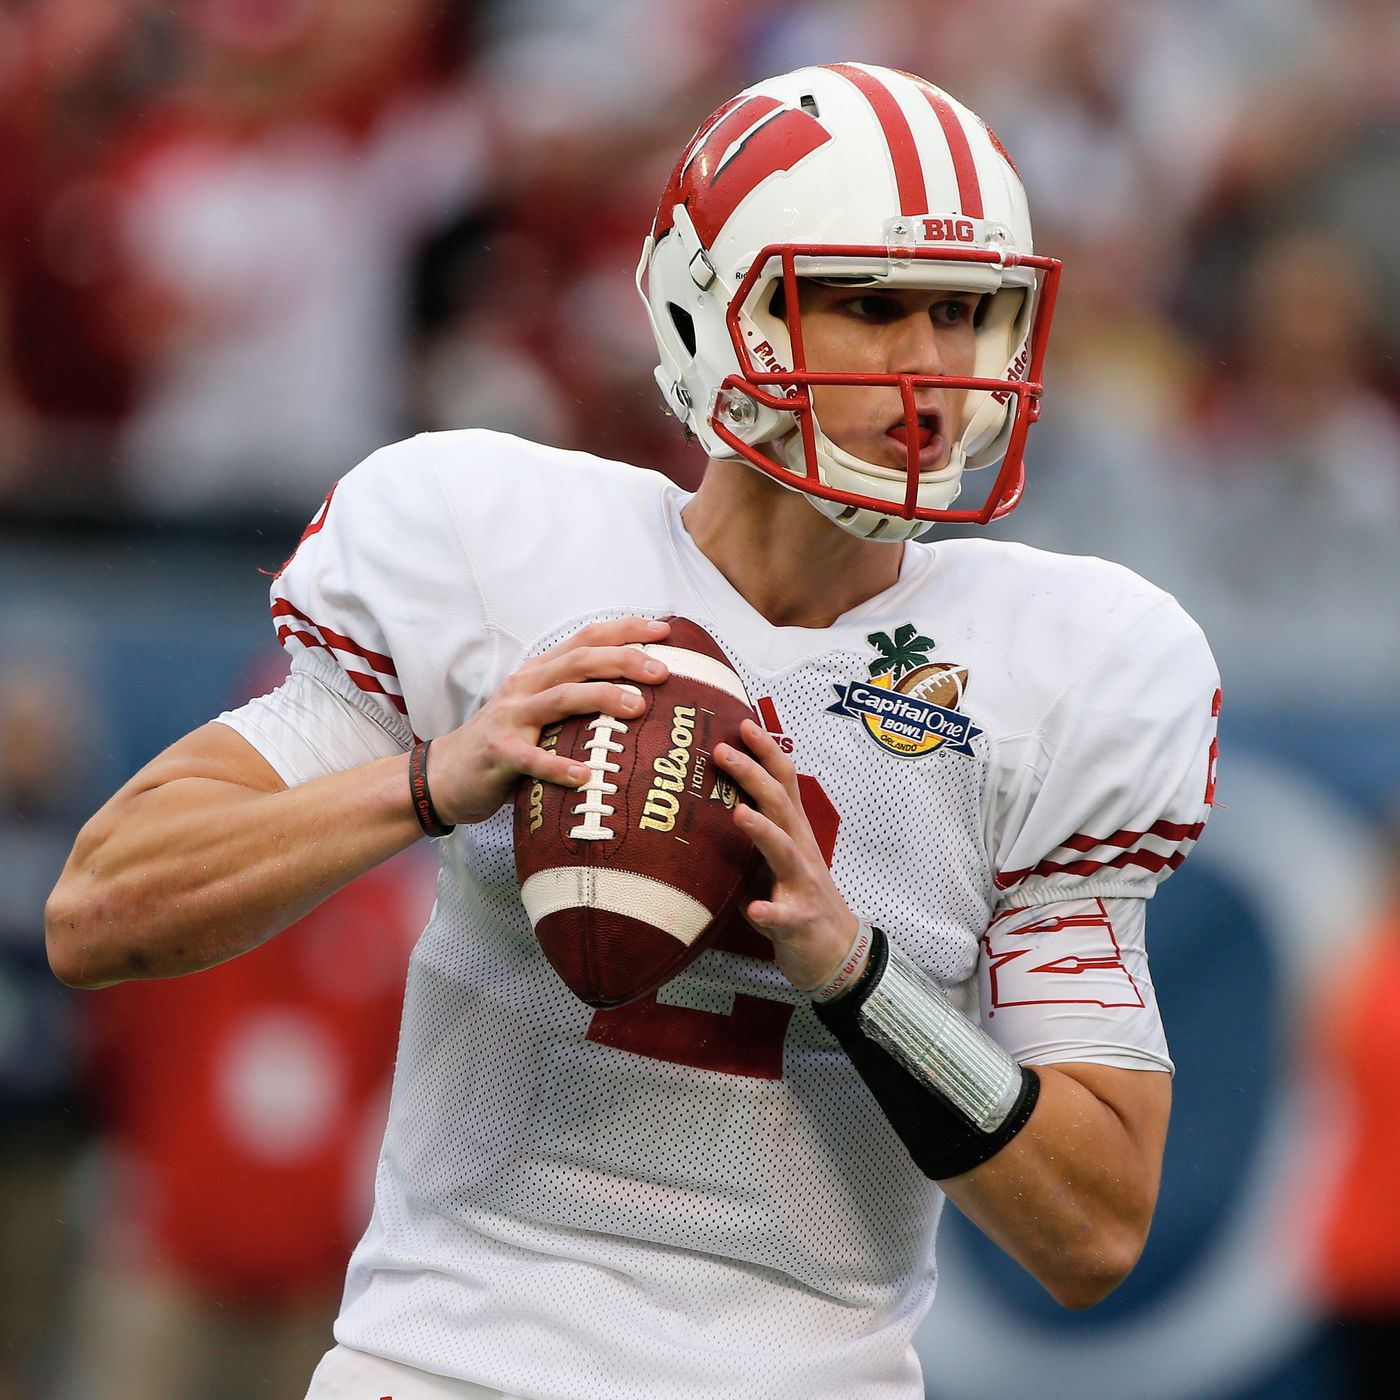 online store 9ecd7 54686 Wisconsin Badgers news, 7/23: Joel Stave, Rick Wagner ...